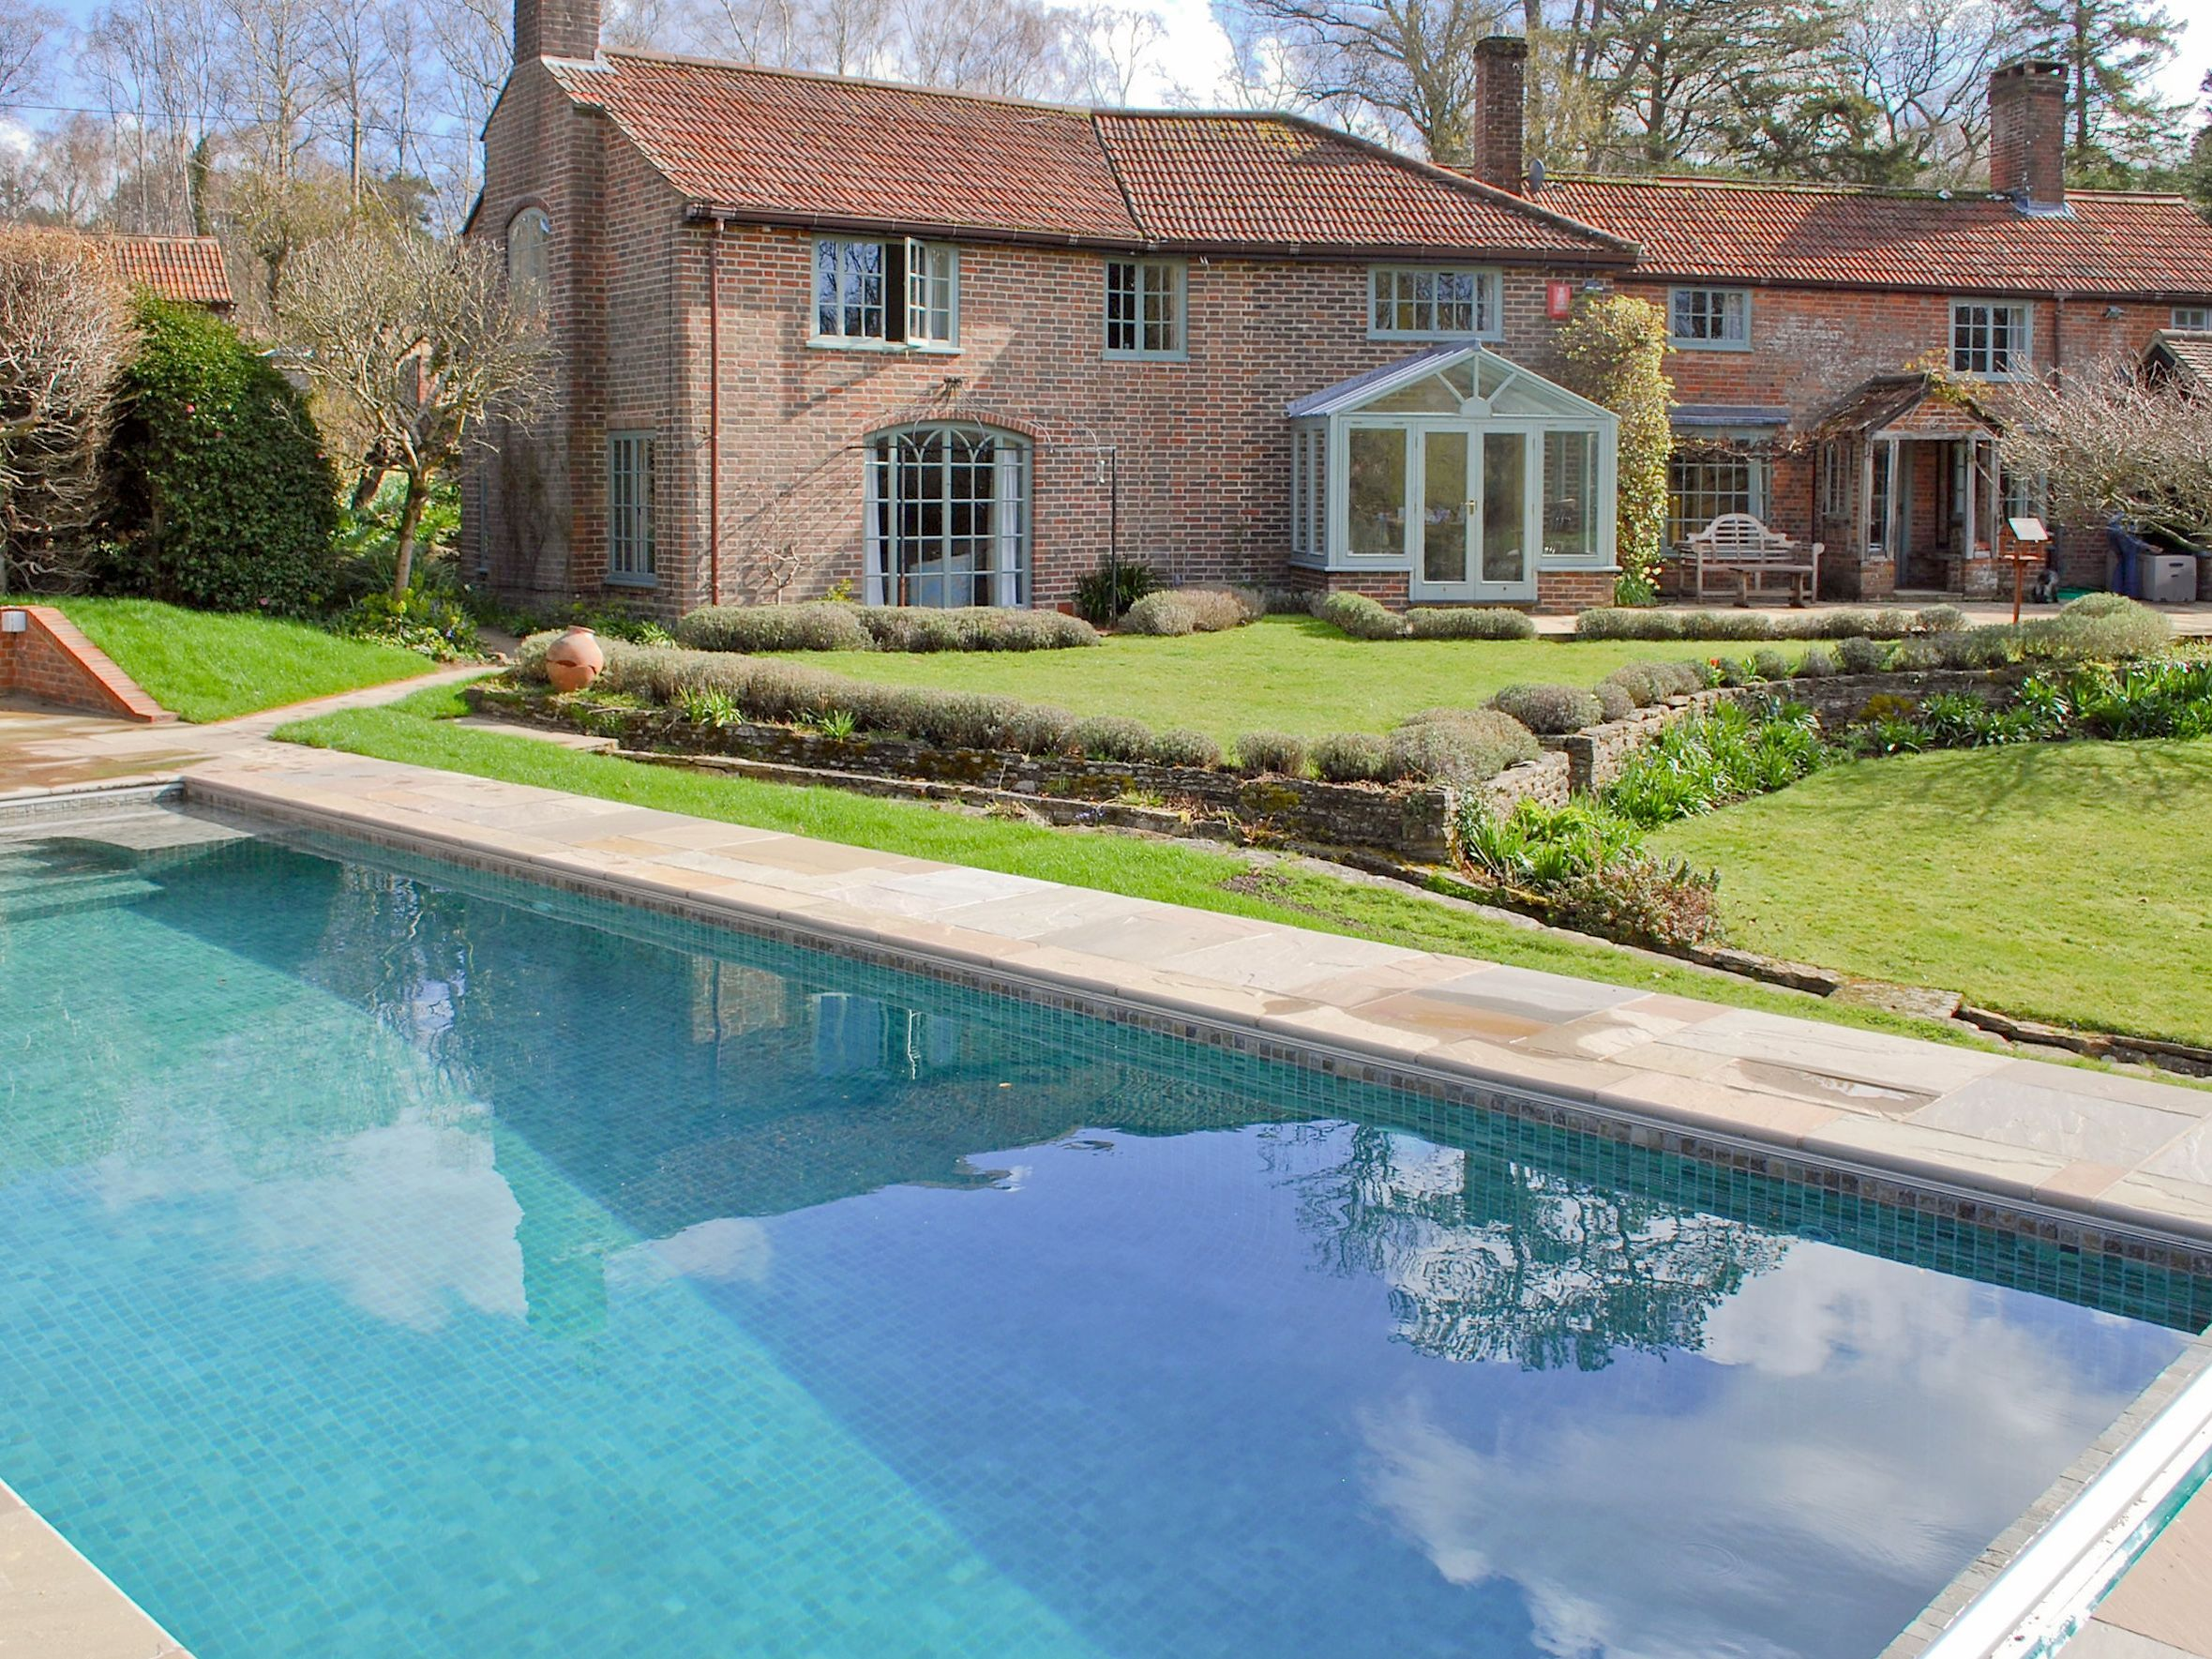 Within The Beautiful Gardens Sits A Tiled Outdoor Heated Swimming Pool With Elegant Roman End And Shallow Ste Cottages With Pools Cottage Rental Vacation Home